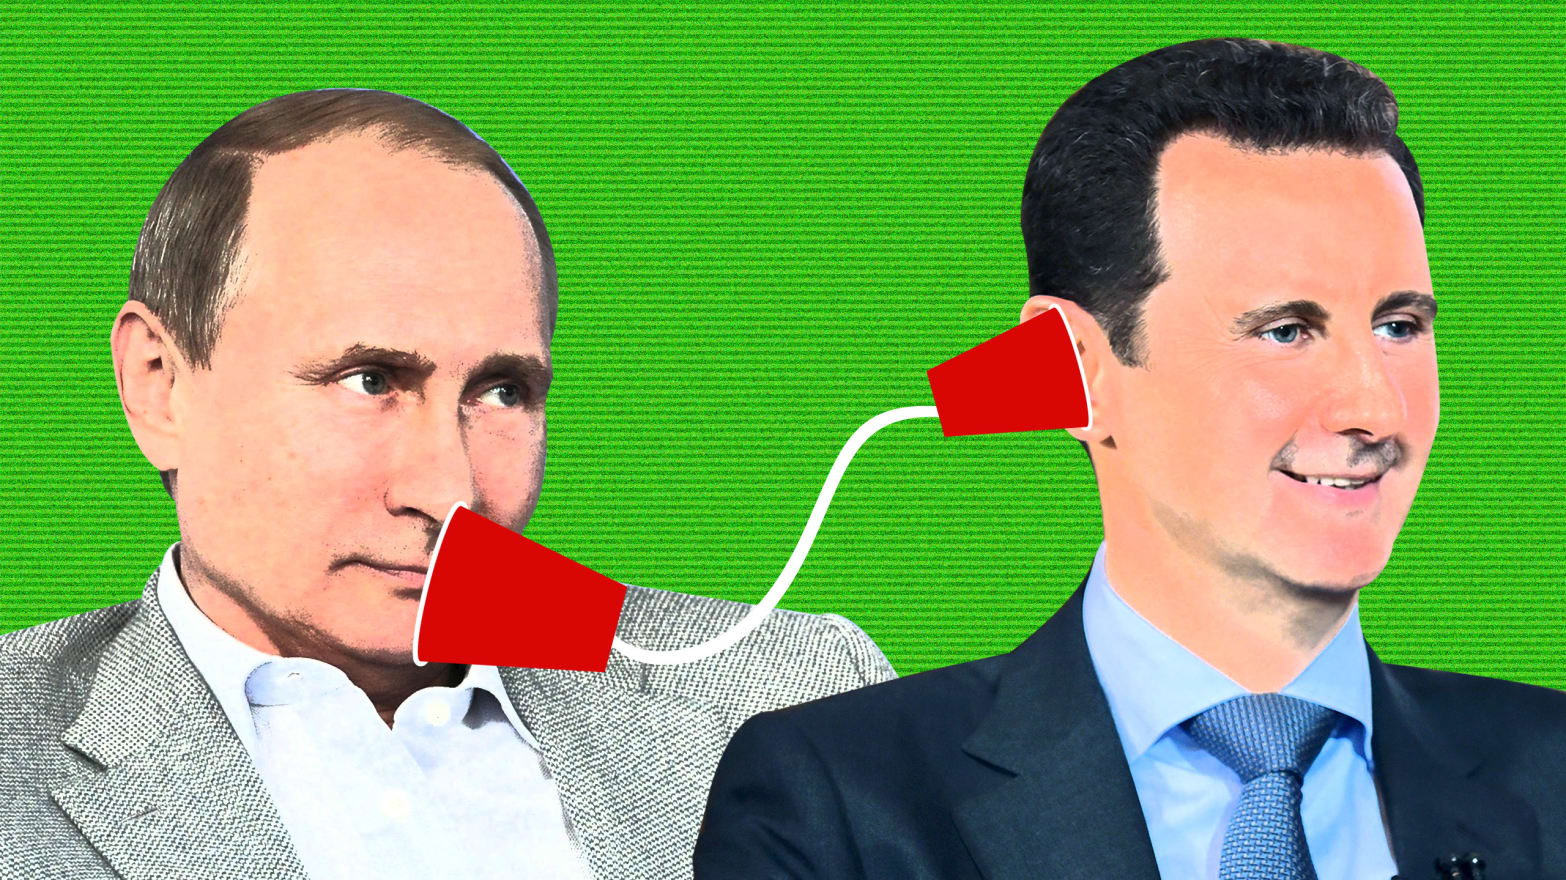 Syria May Be the Test Case for Russia's Influence